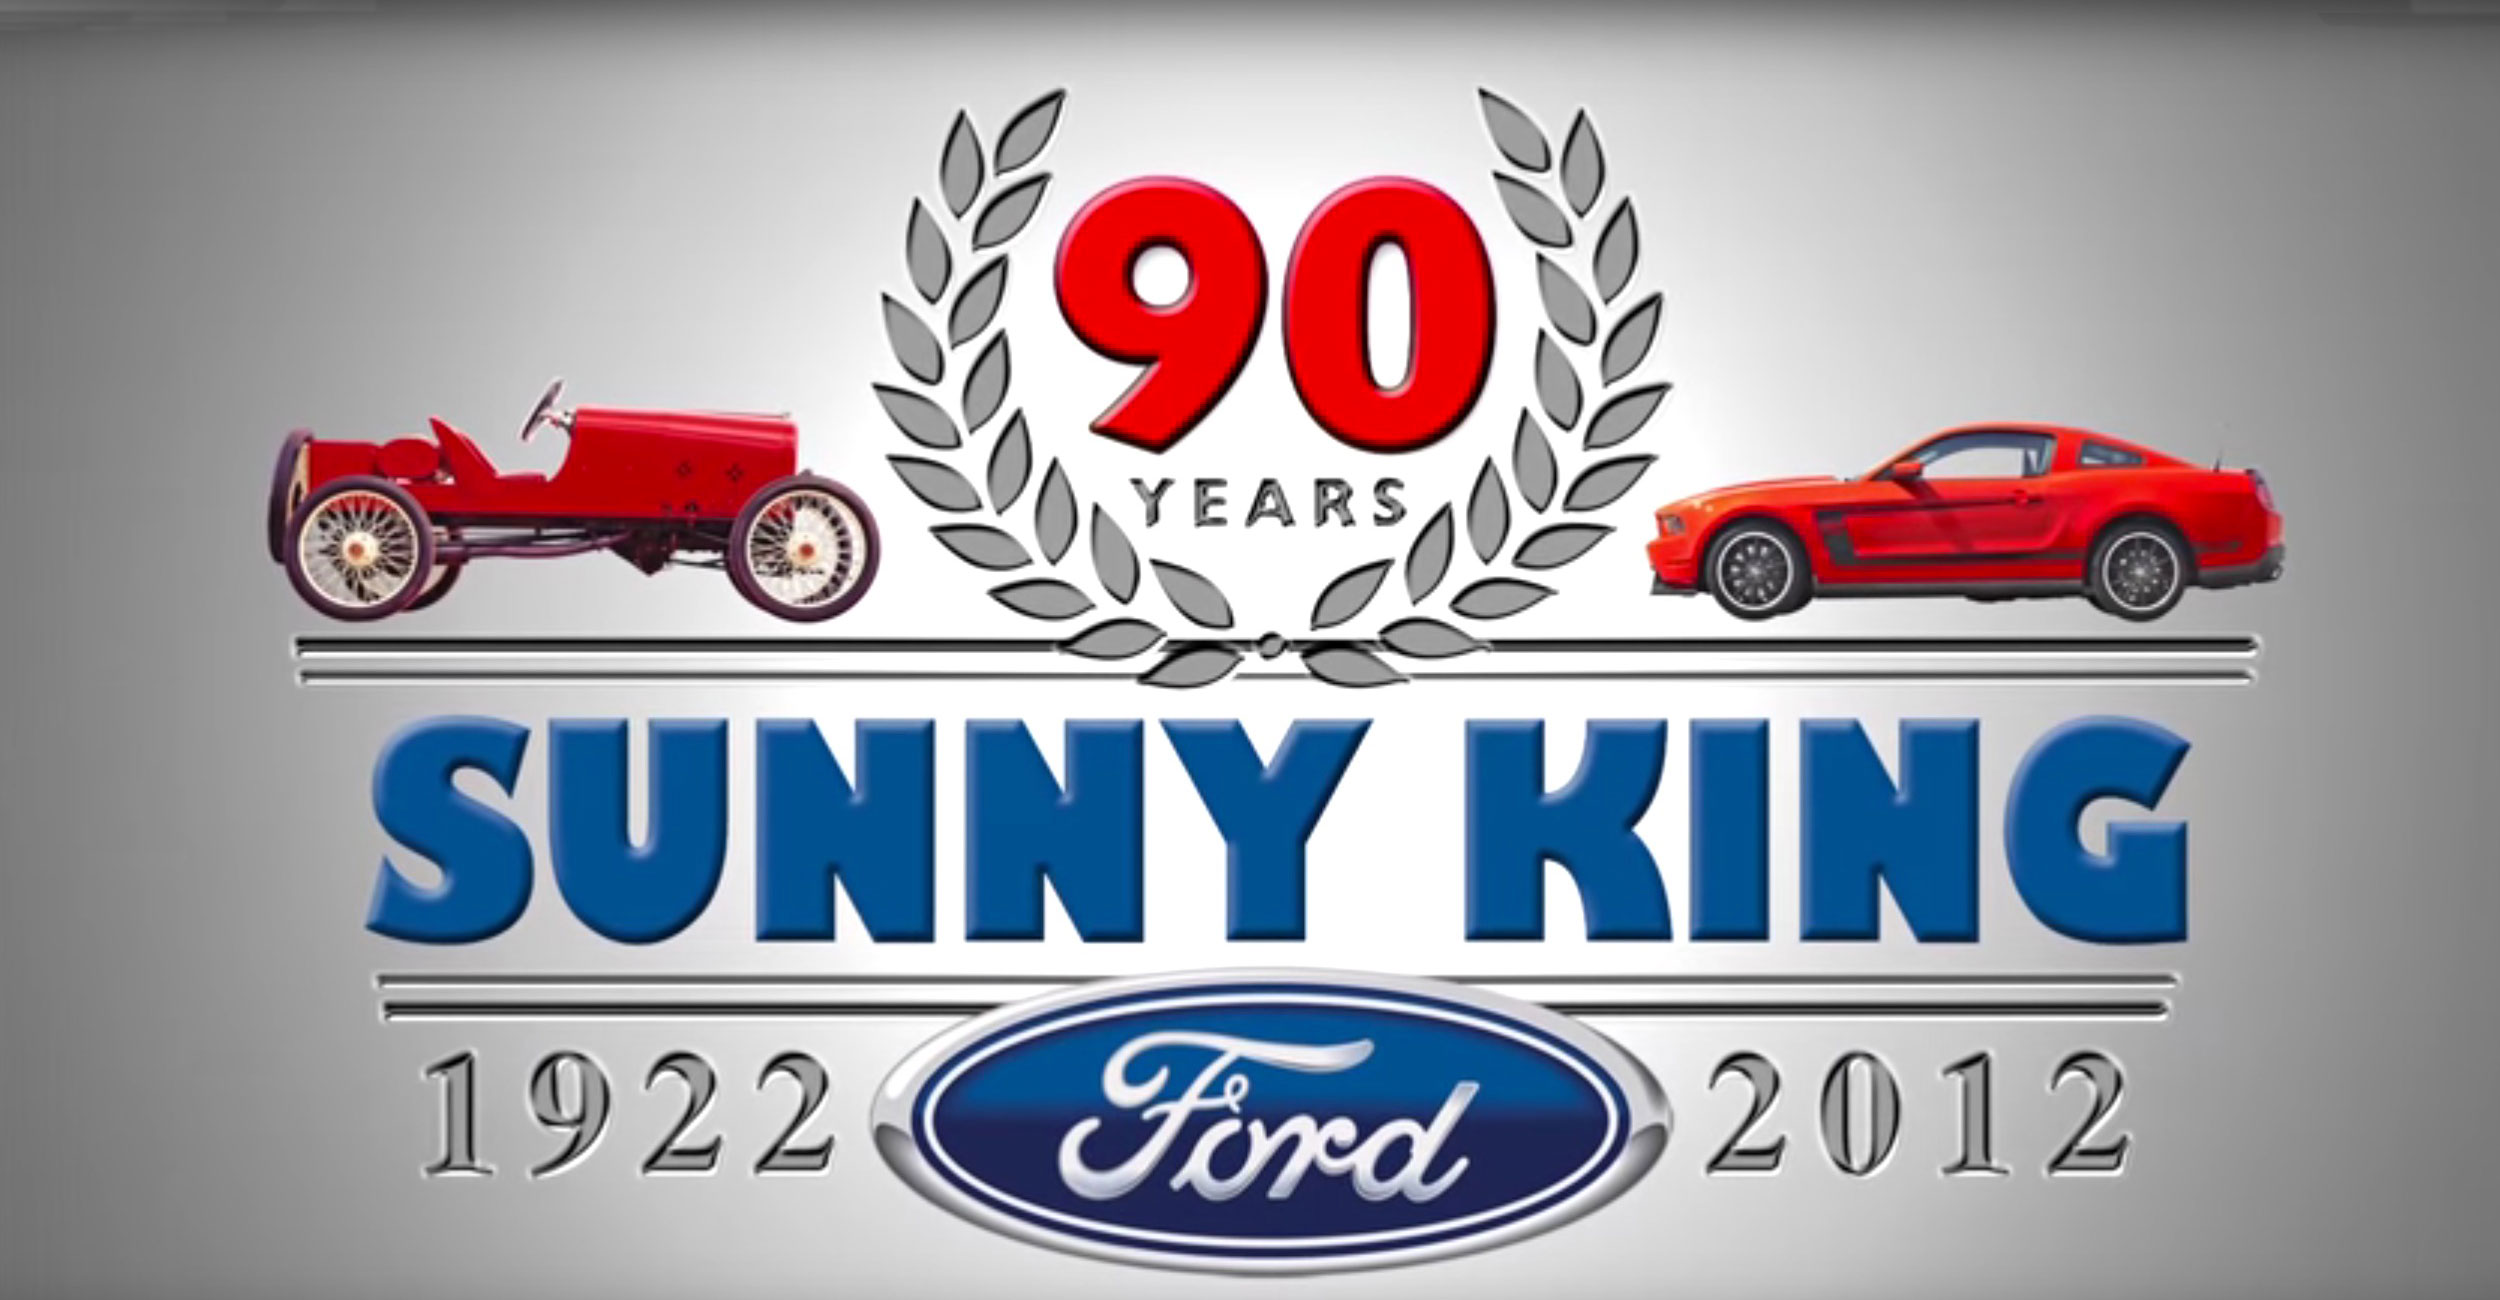 Sunny King Ford 90th Anniversary